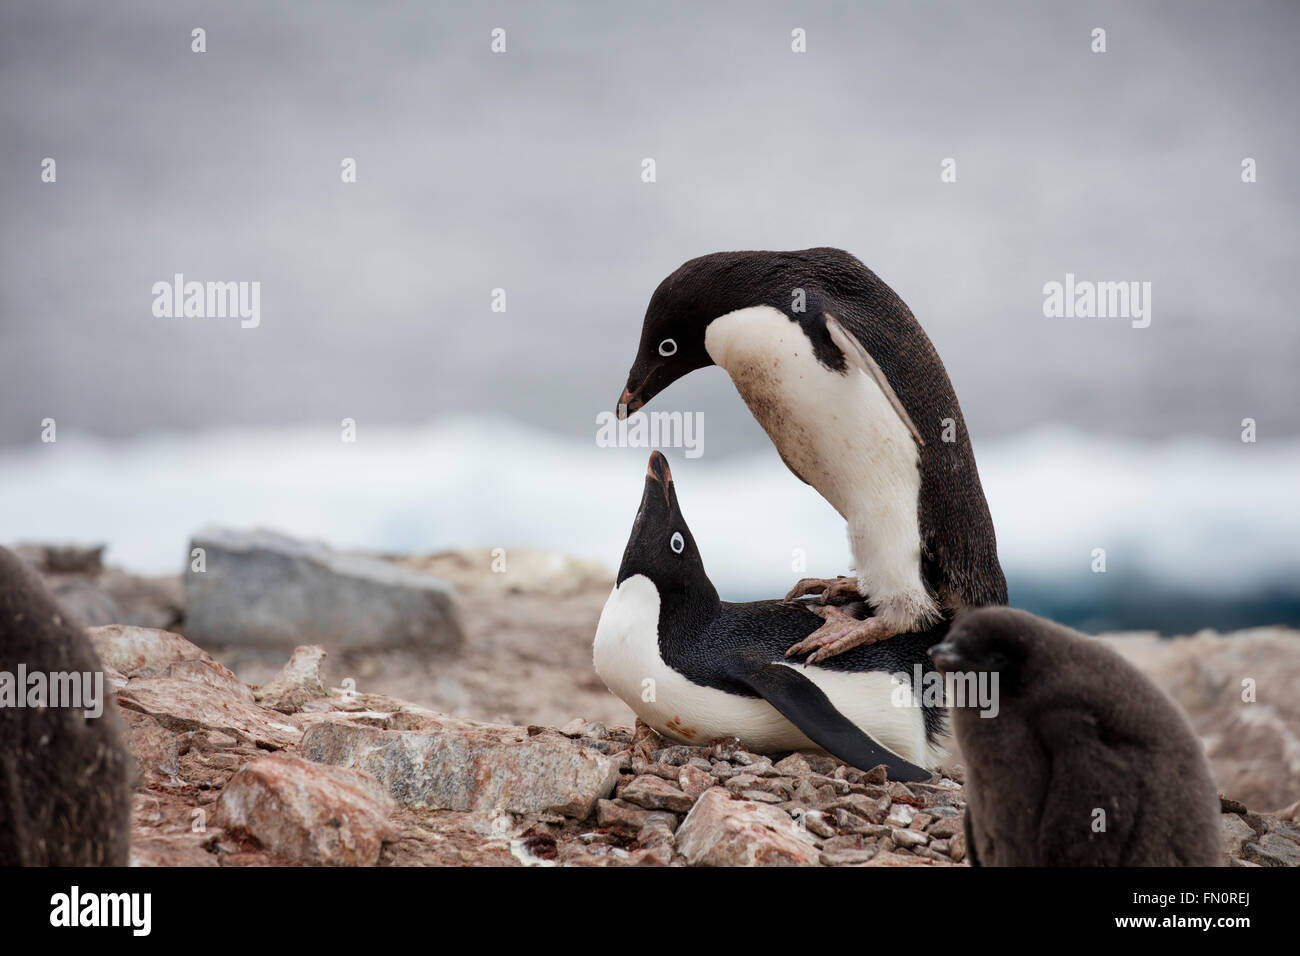 Antarctica, Antarctic peninsula, Petermann Island, Adelie penguin, Mating pair - Stock Image